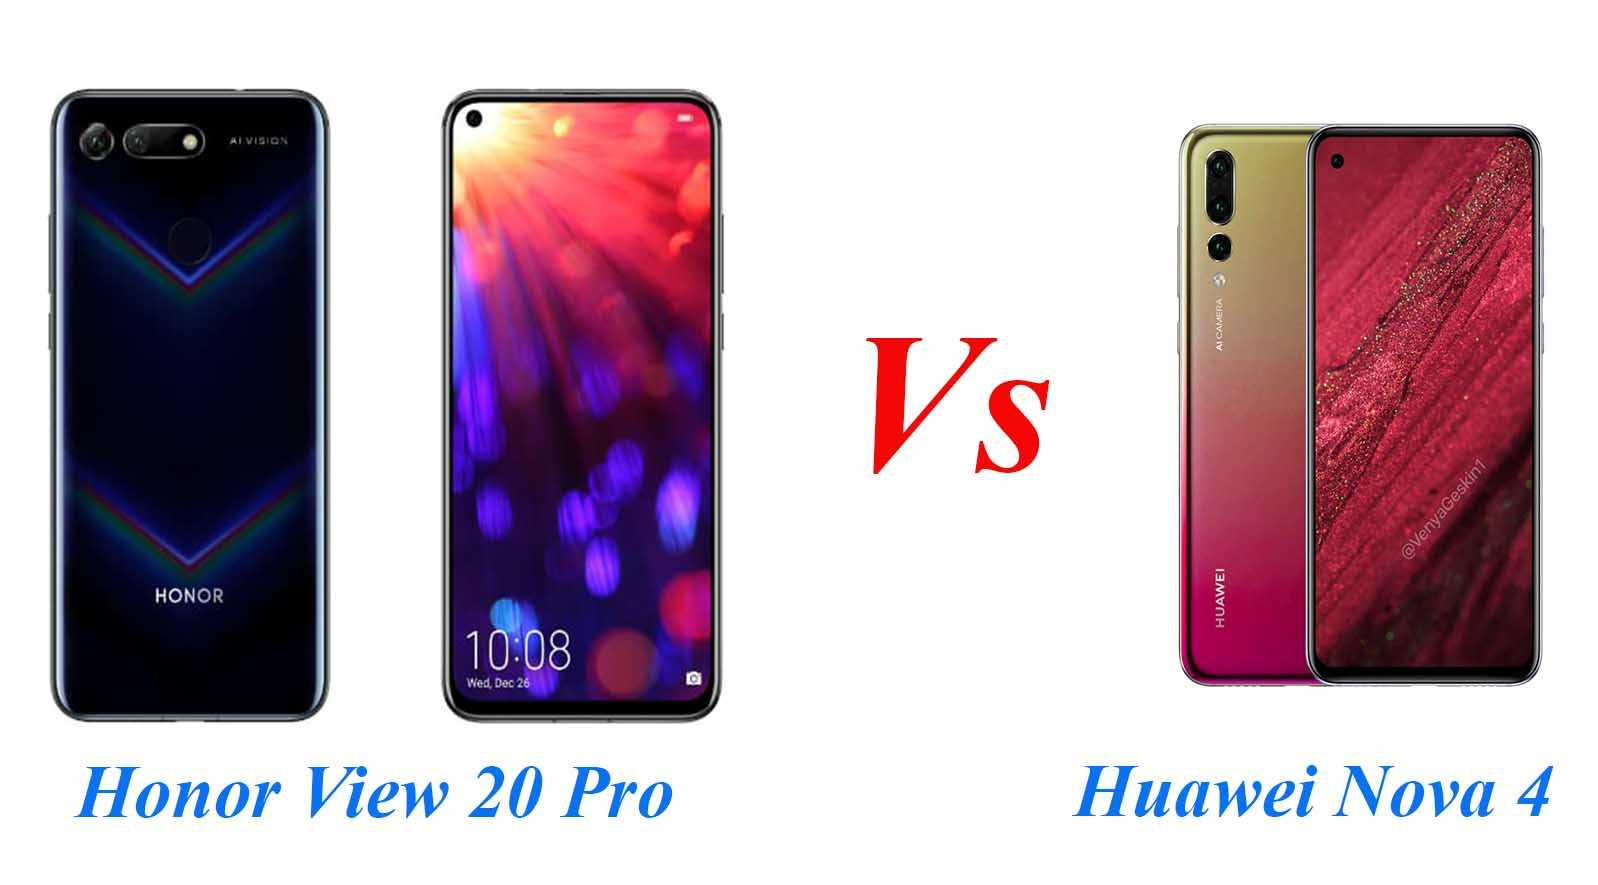 honor view 20 pro vs huawei nova 4